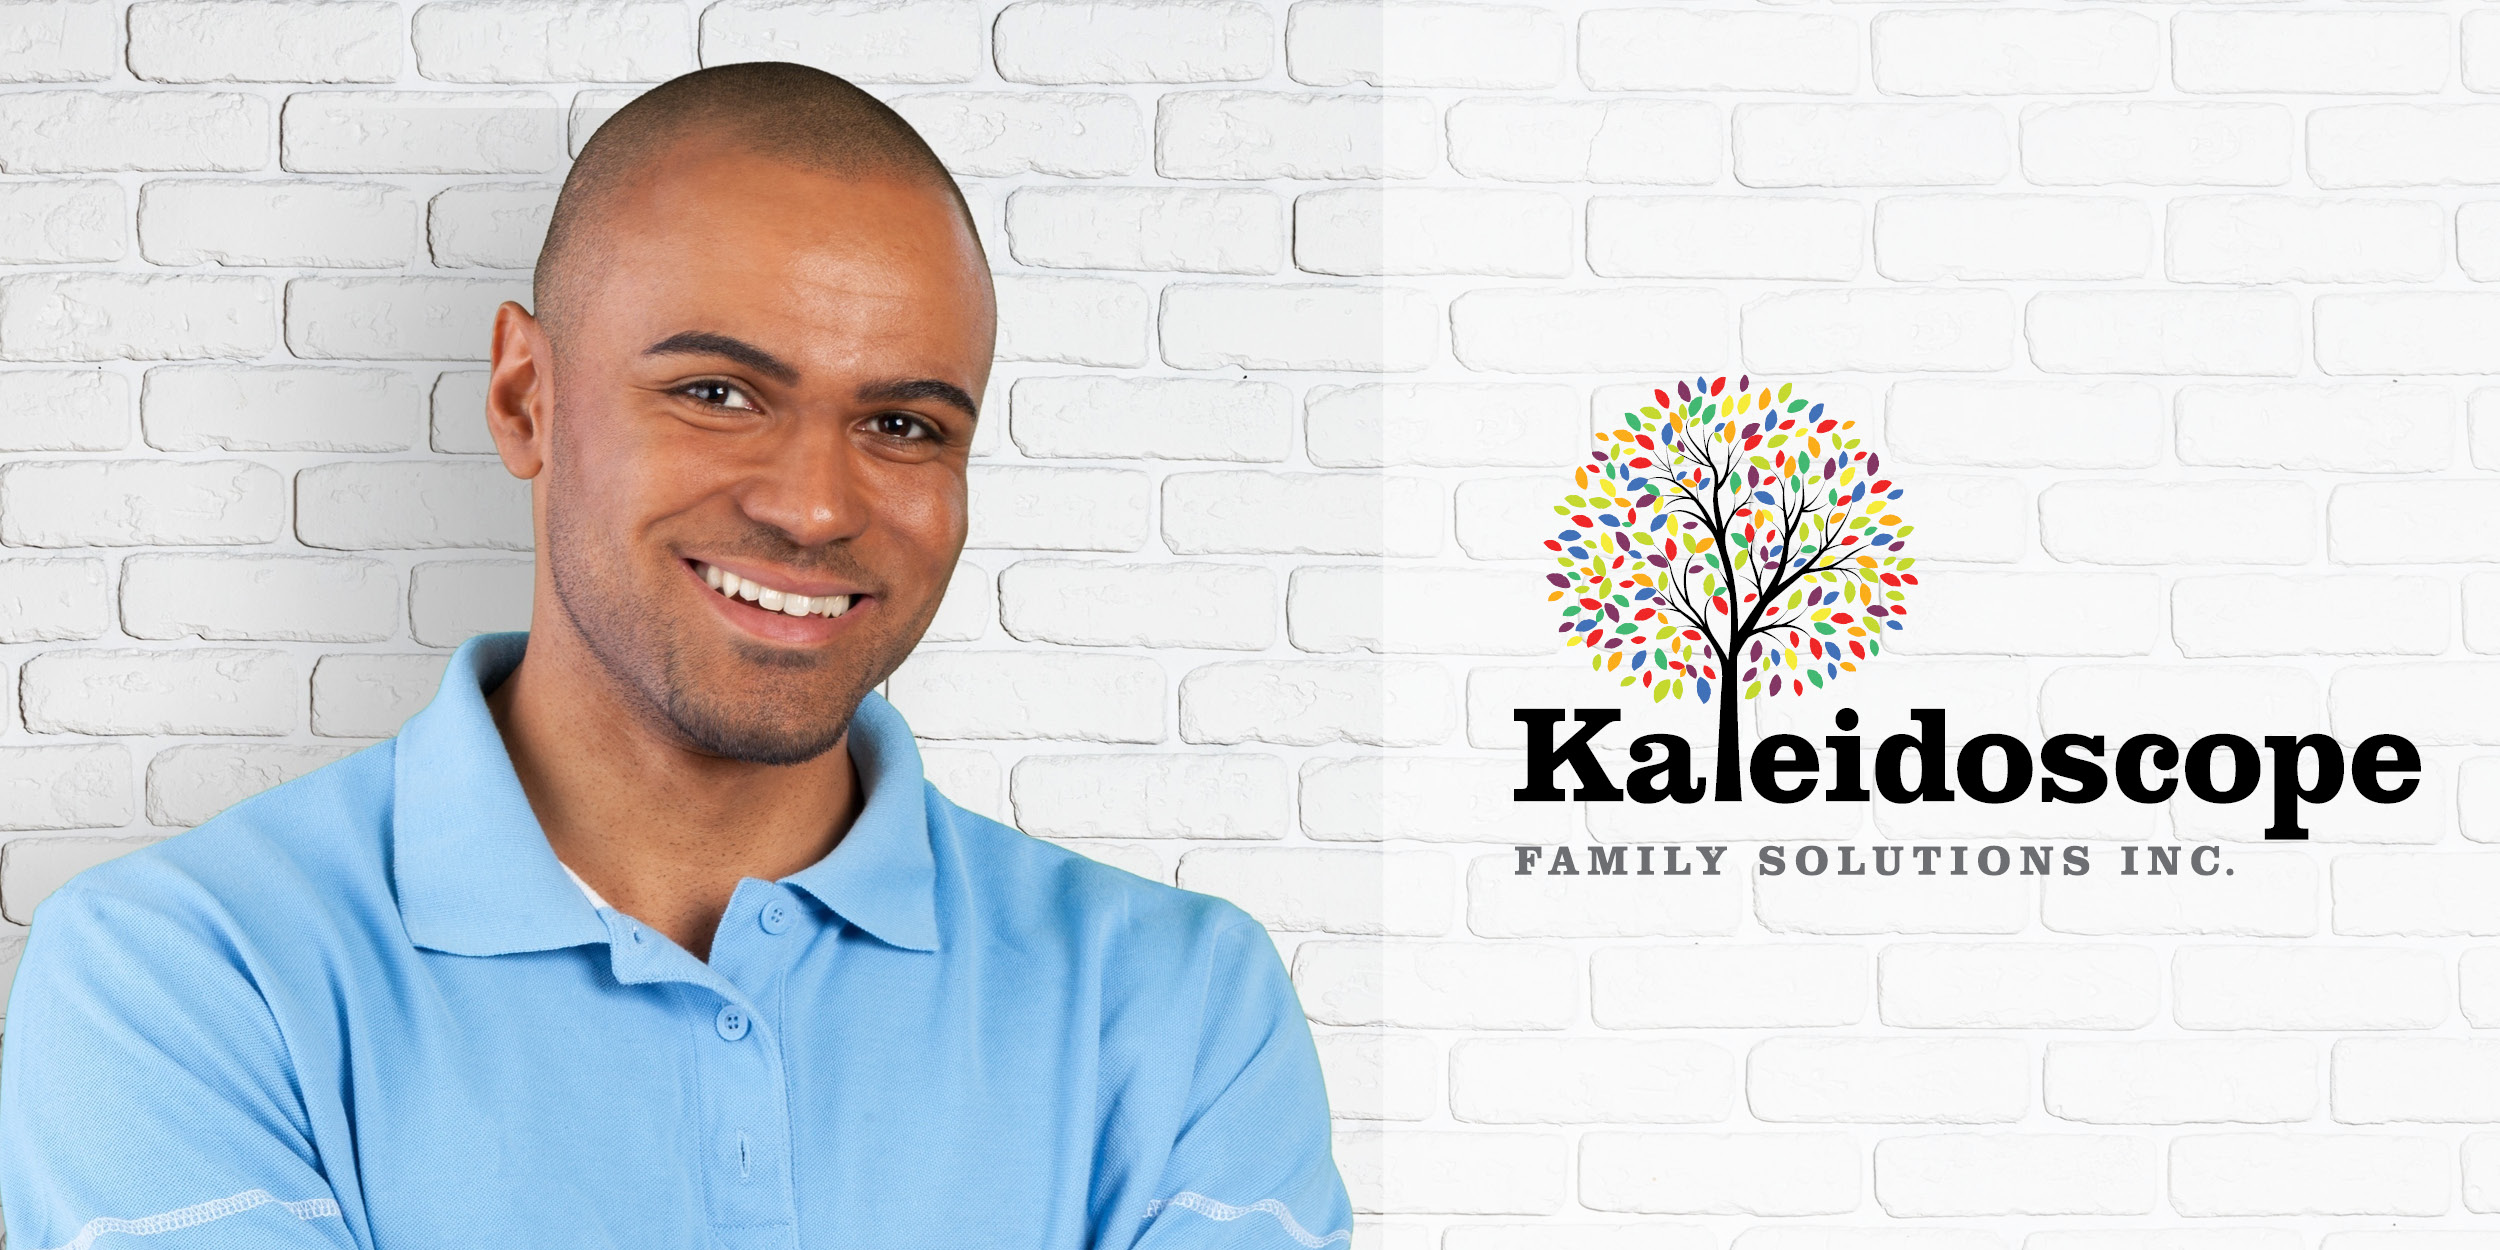 Kaleidoscope Family Solutions Inc - Therapeutic Support for Families banner image